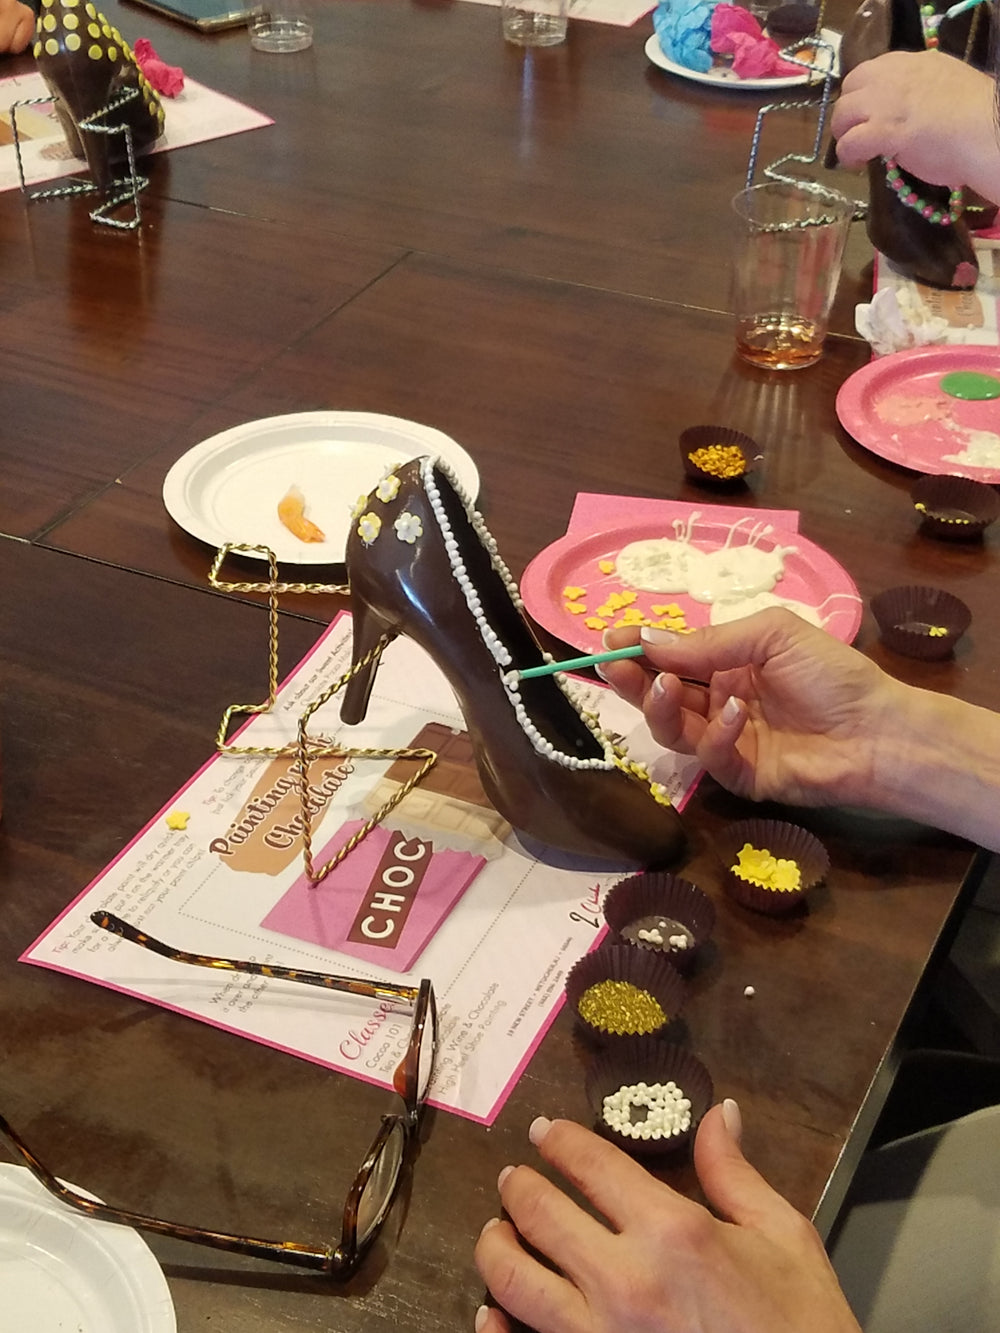 High Heel Painting Activity - 2 Chicks with Chocolate